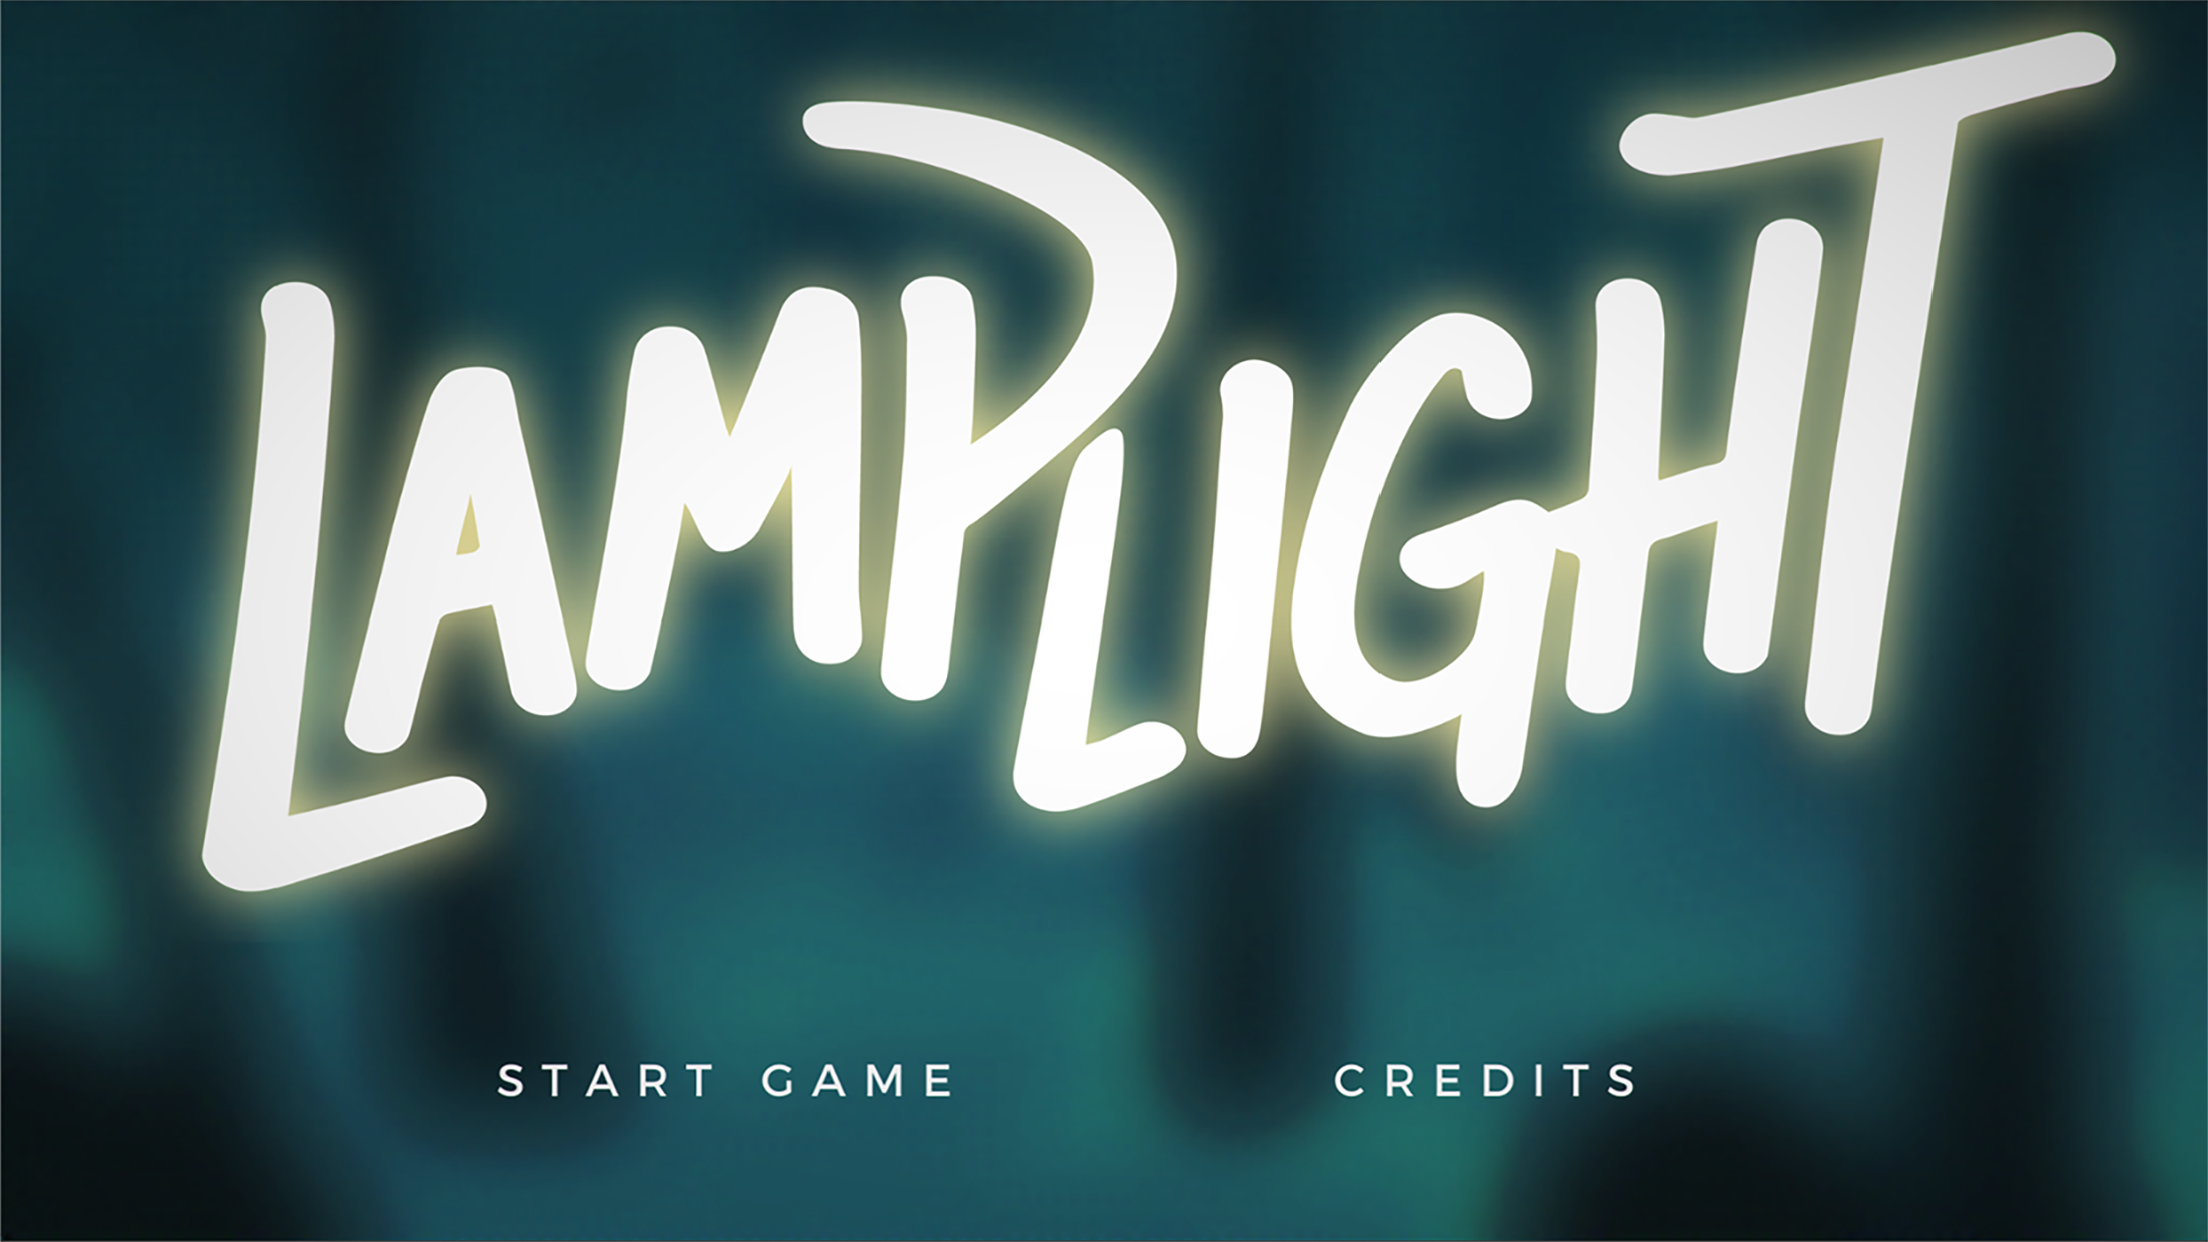 Lamplight - 2D audio driven mobile game.Role: Audio and gameplay programmerDuration: January 2017 – May 2017Tools: Unity 5, Monodevelop, Photoshop, Git+SourcetreeLanguage: C#Platforms: Android, iOSTeam Size: 6